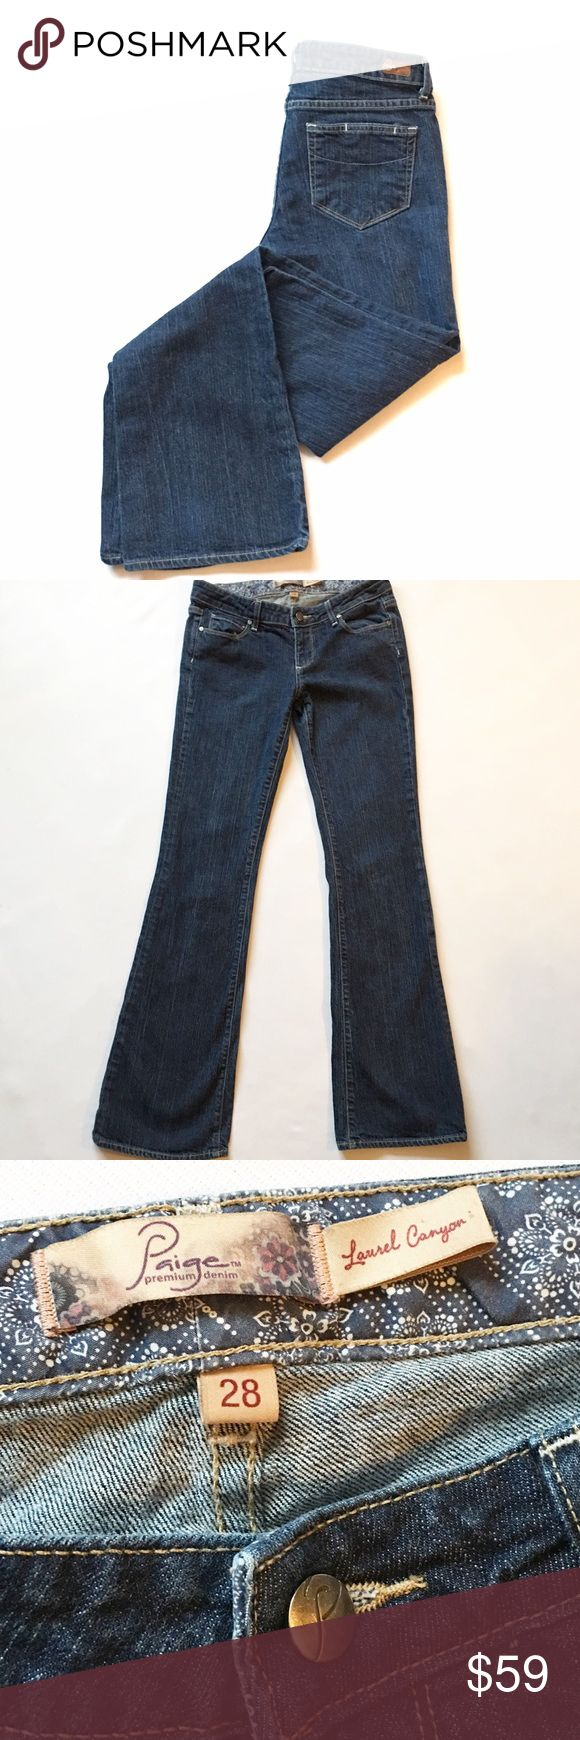 """Paige jeans size 28 Excellent condition! Size 28! 32"""" inseam! Make an offer I always accept or counter! Paige Jeans Jeans Boot Cut"""